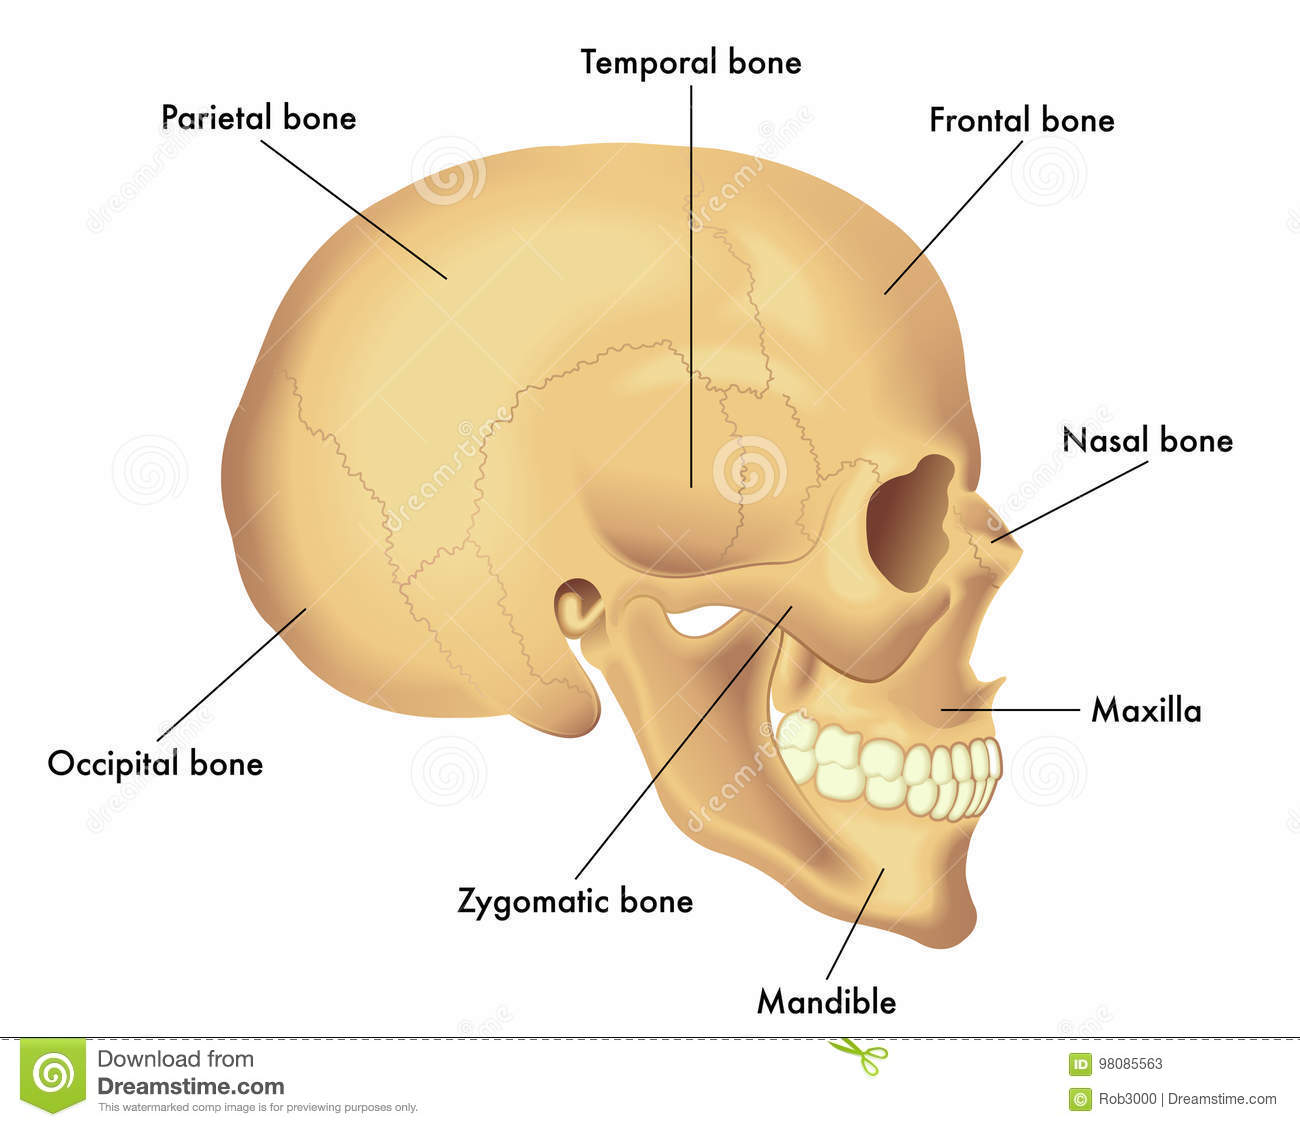 anatomy diagram of a skull stock vector illustration of medical rh dreamstime com diagram of a dog skull diagram of skull with labels